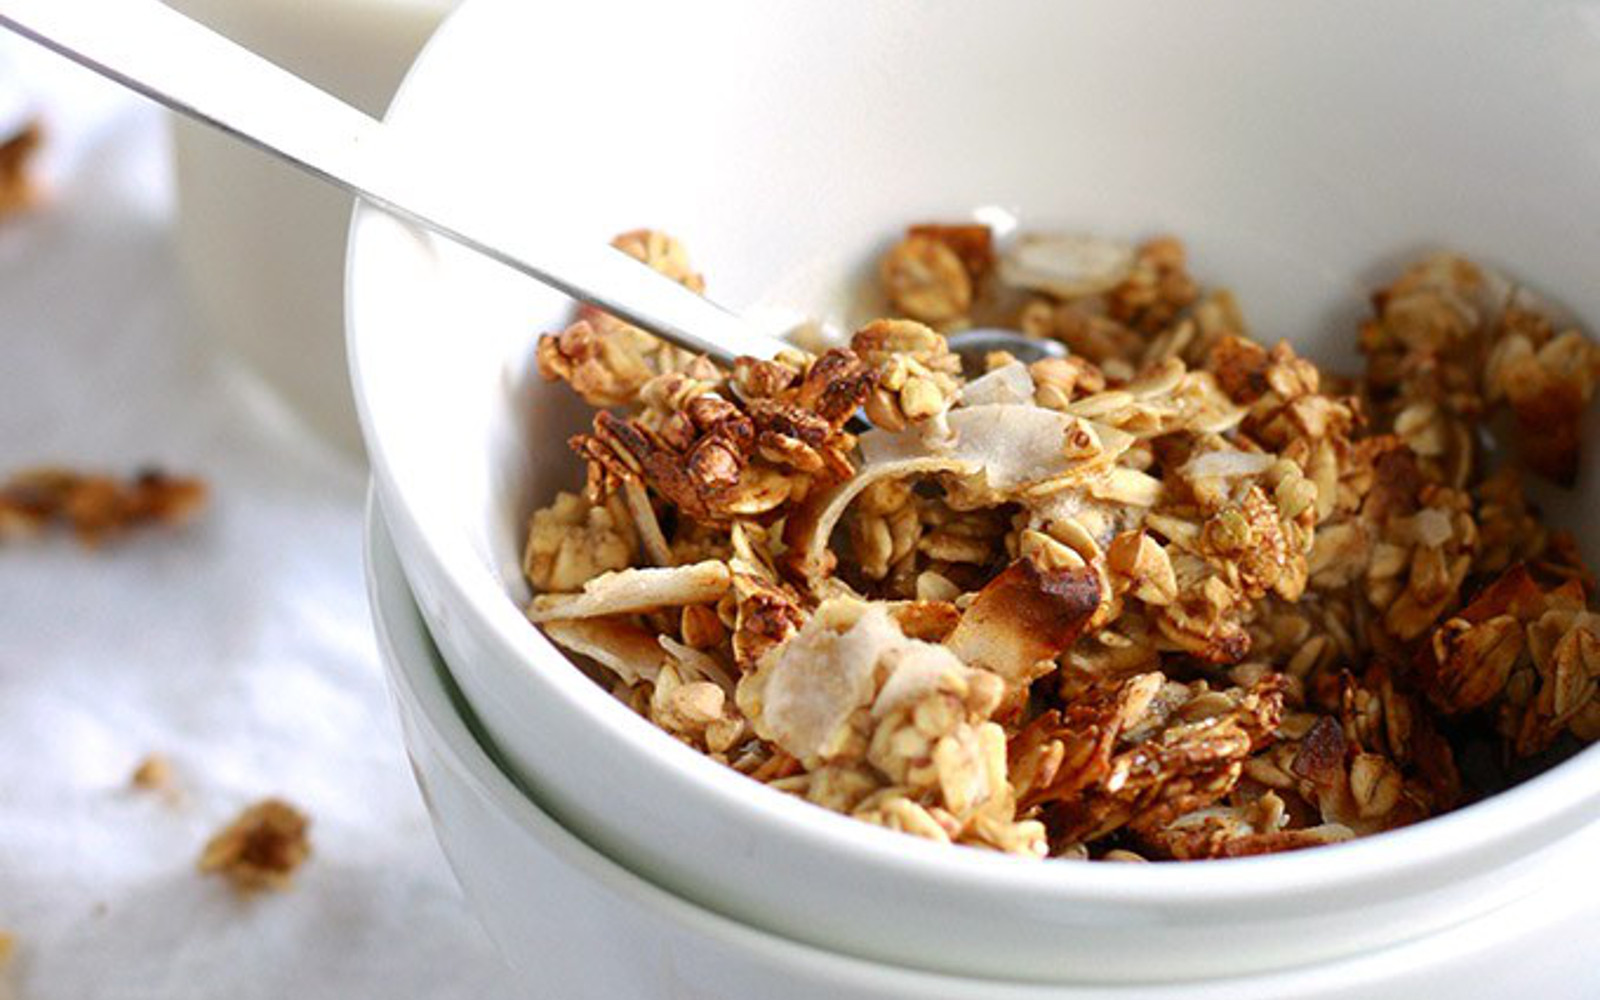 Caramelized Banana Granola